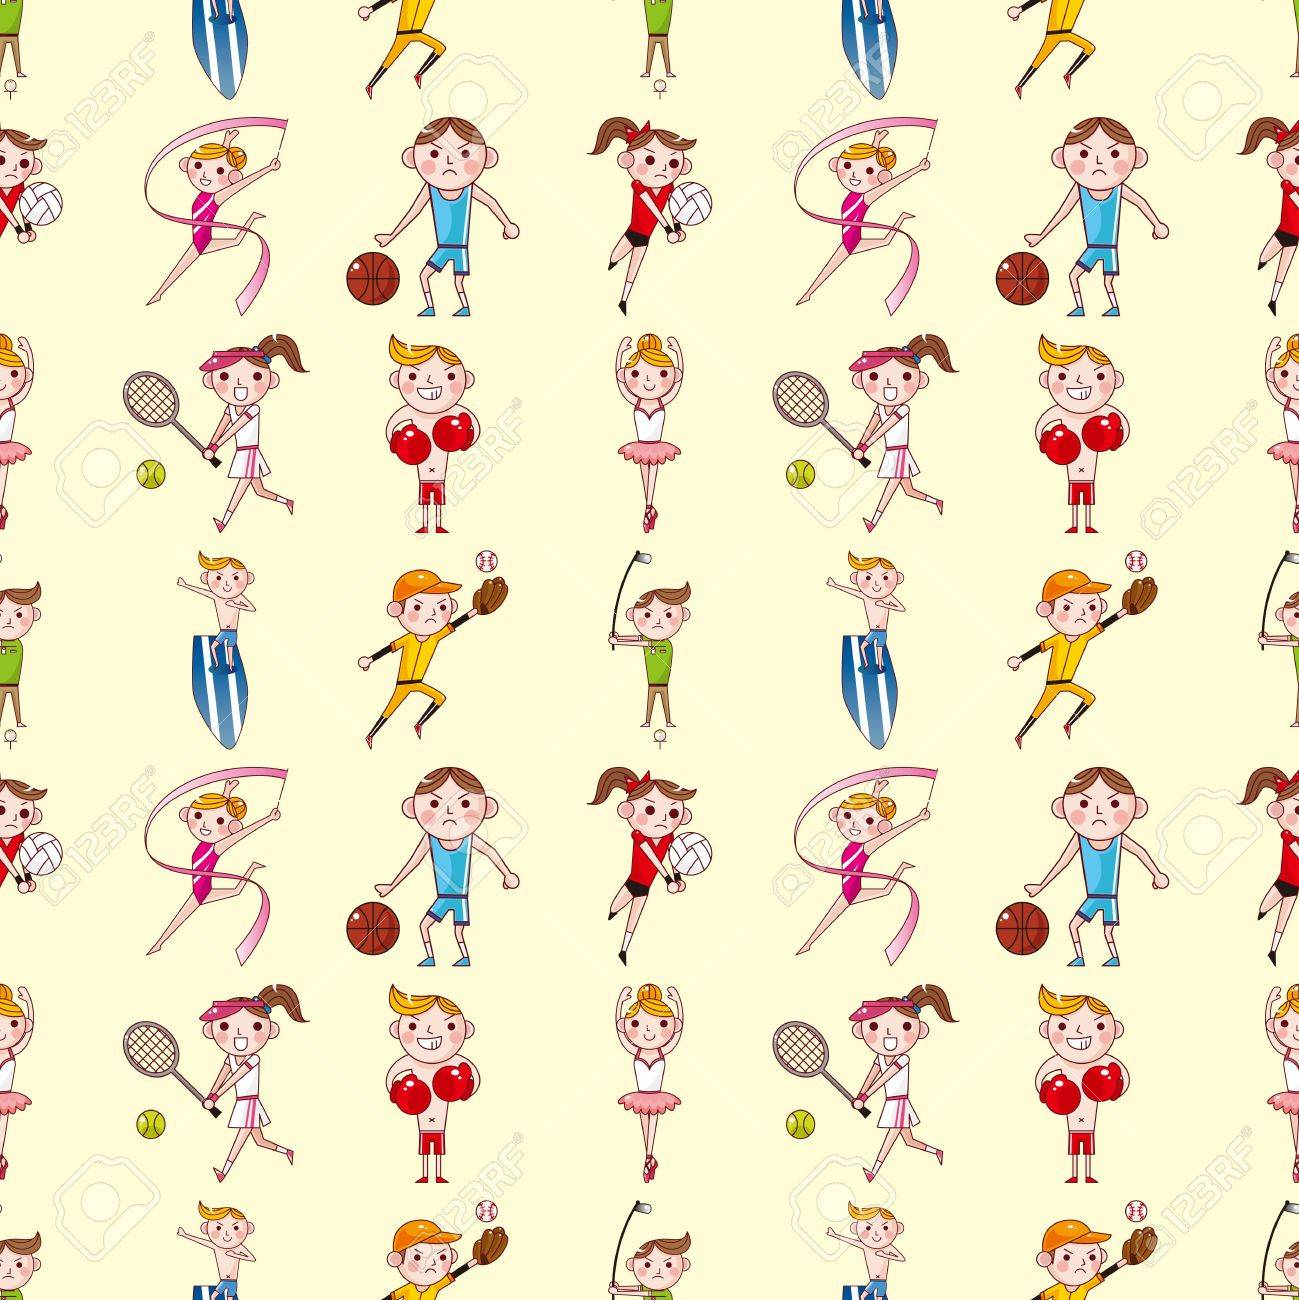 seamless sport player pattern,cartoon vector illustration Stock Vector - 16925739